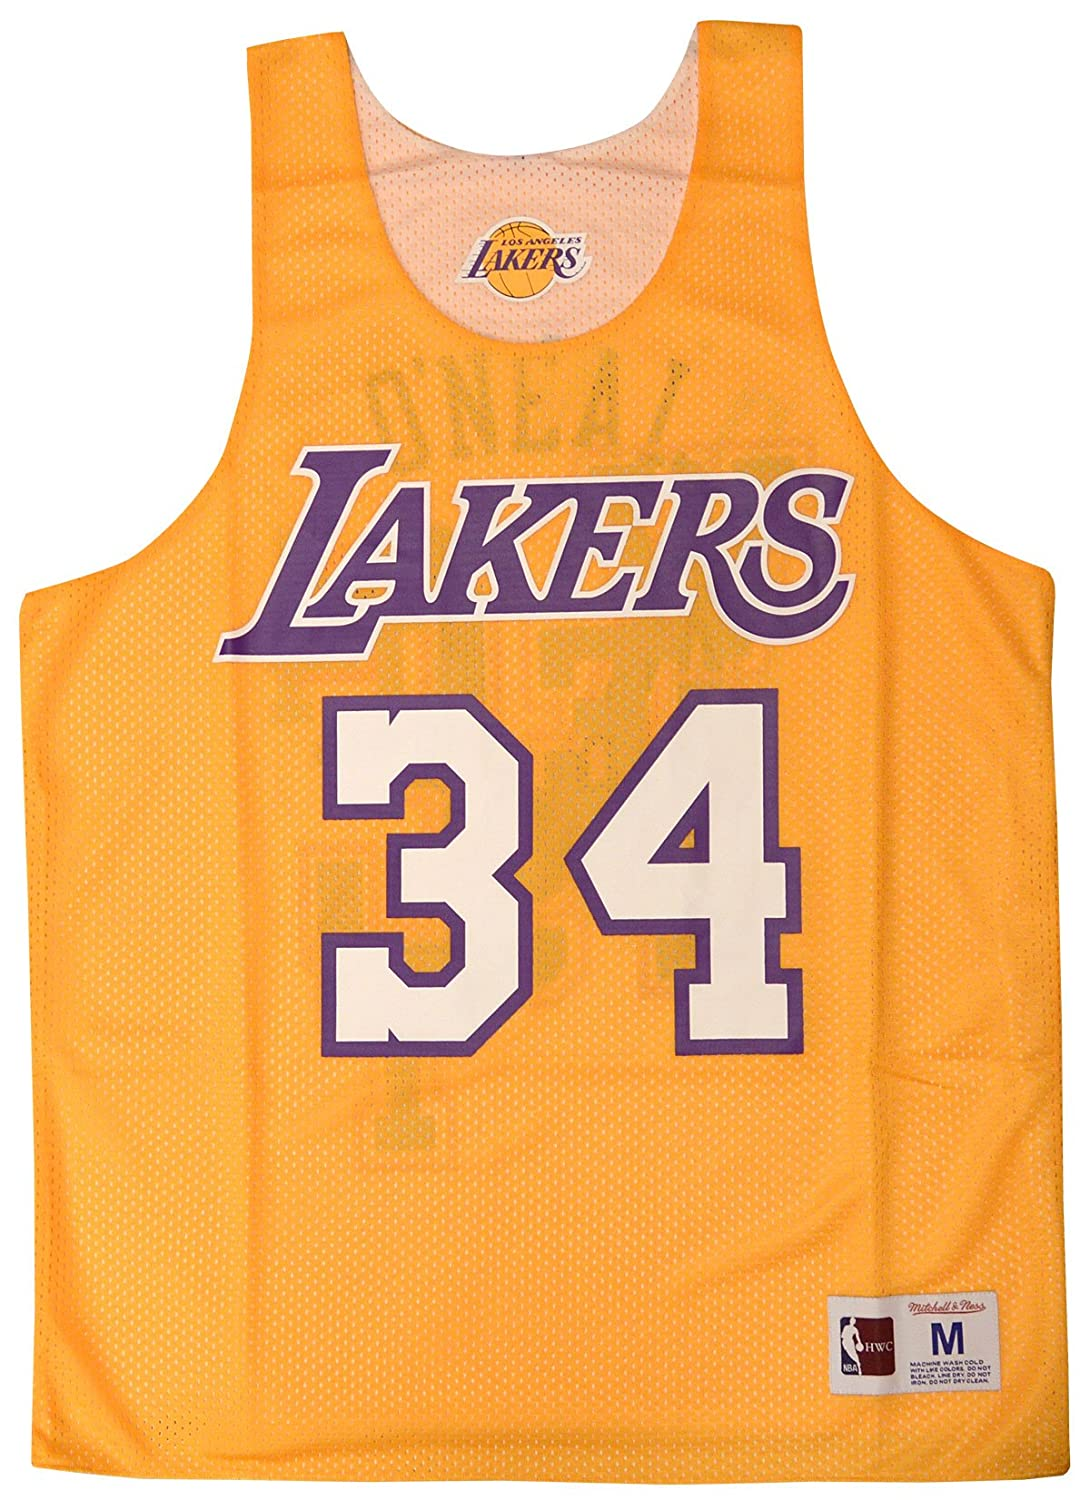 aab8d4f60 Amazon.com   Mitchell   Ness Shaquille O Neal  34 Los Angeles Lakers 2004  All Star Game Reversible Mesh Tank Top   Clothing